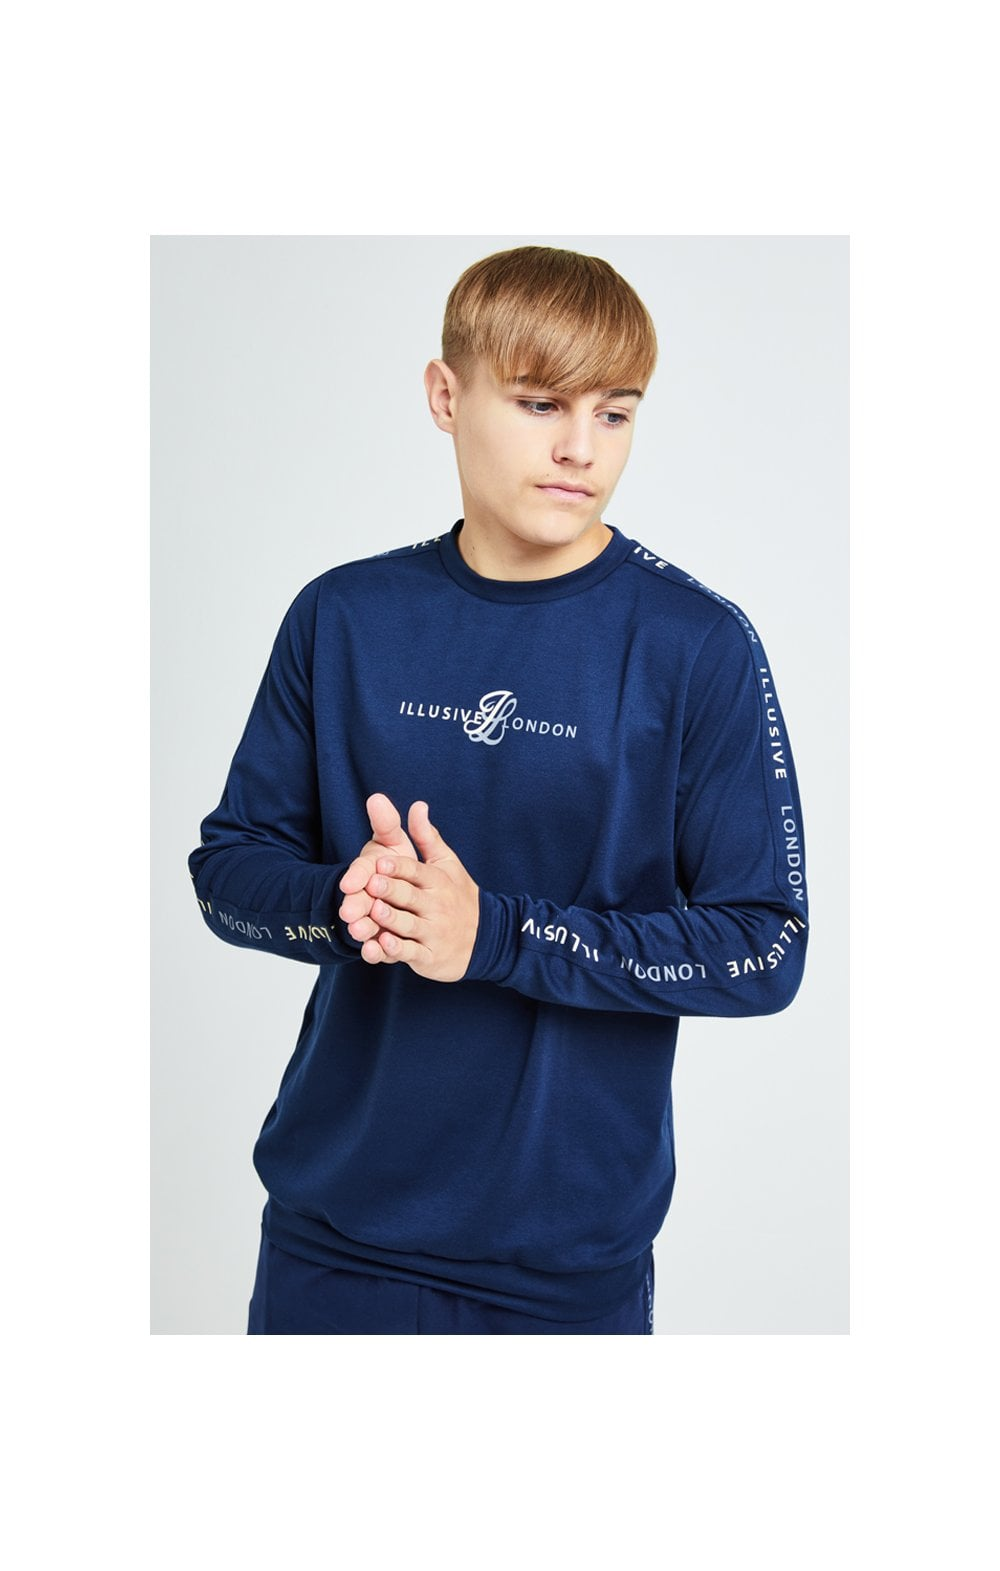 Load image into Gallery viewer, Illusive London Legacy Crew Sweater - Navy & Cream